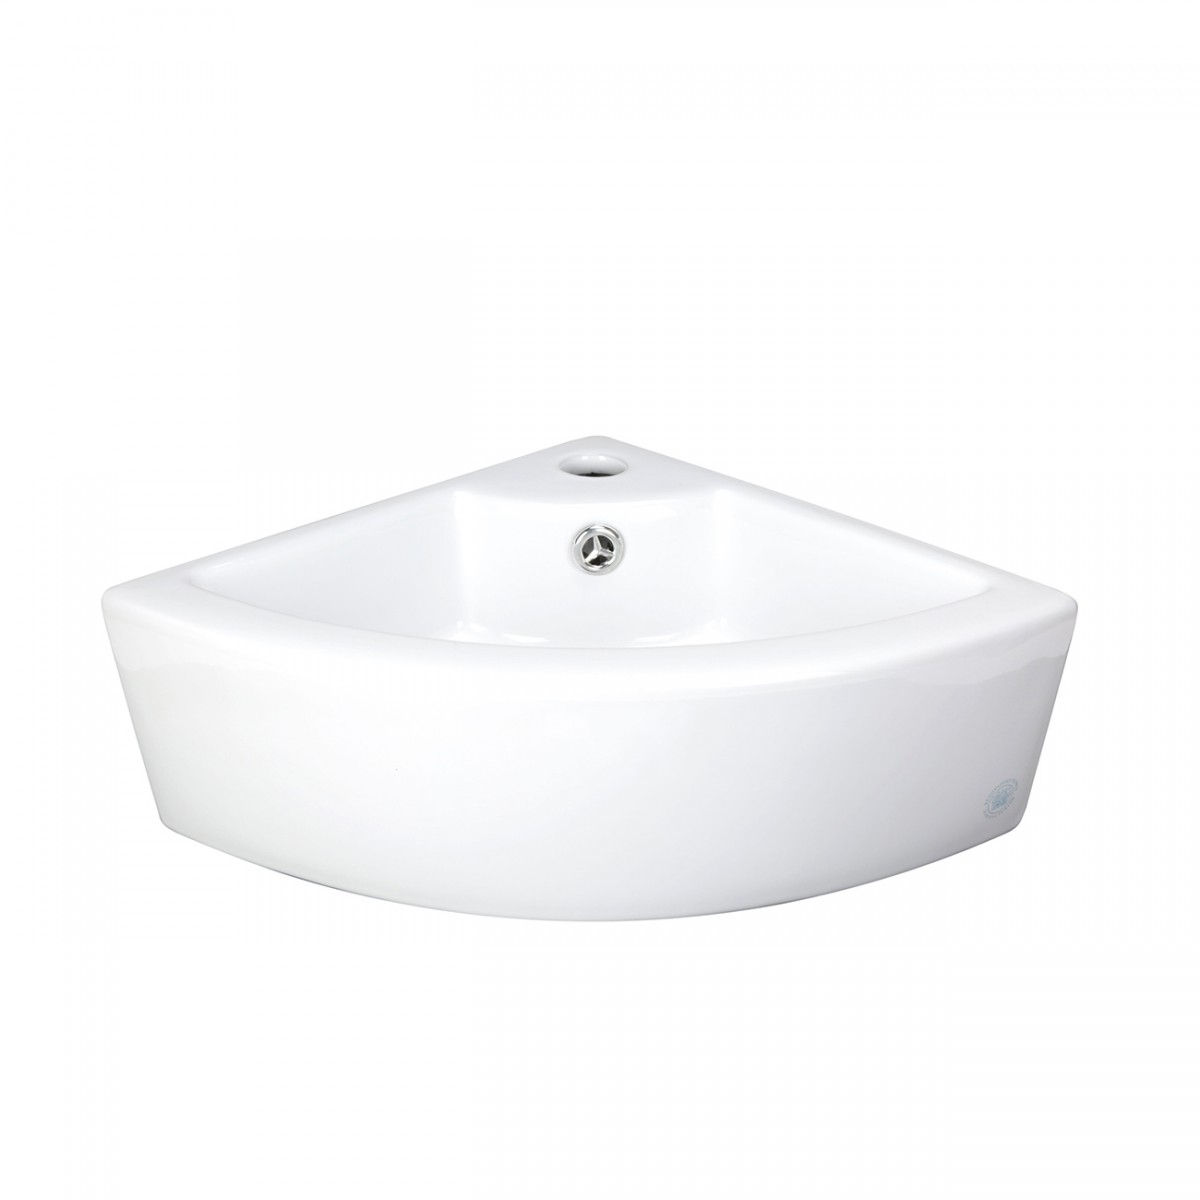 Tiny Vessel Sink : Home Bathroom Bathroom Sinks & Parts Small Bathroom Sinks